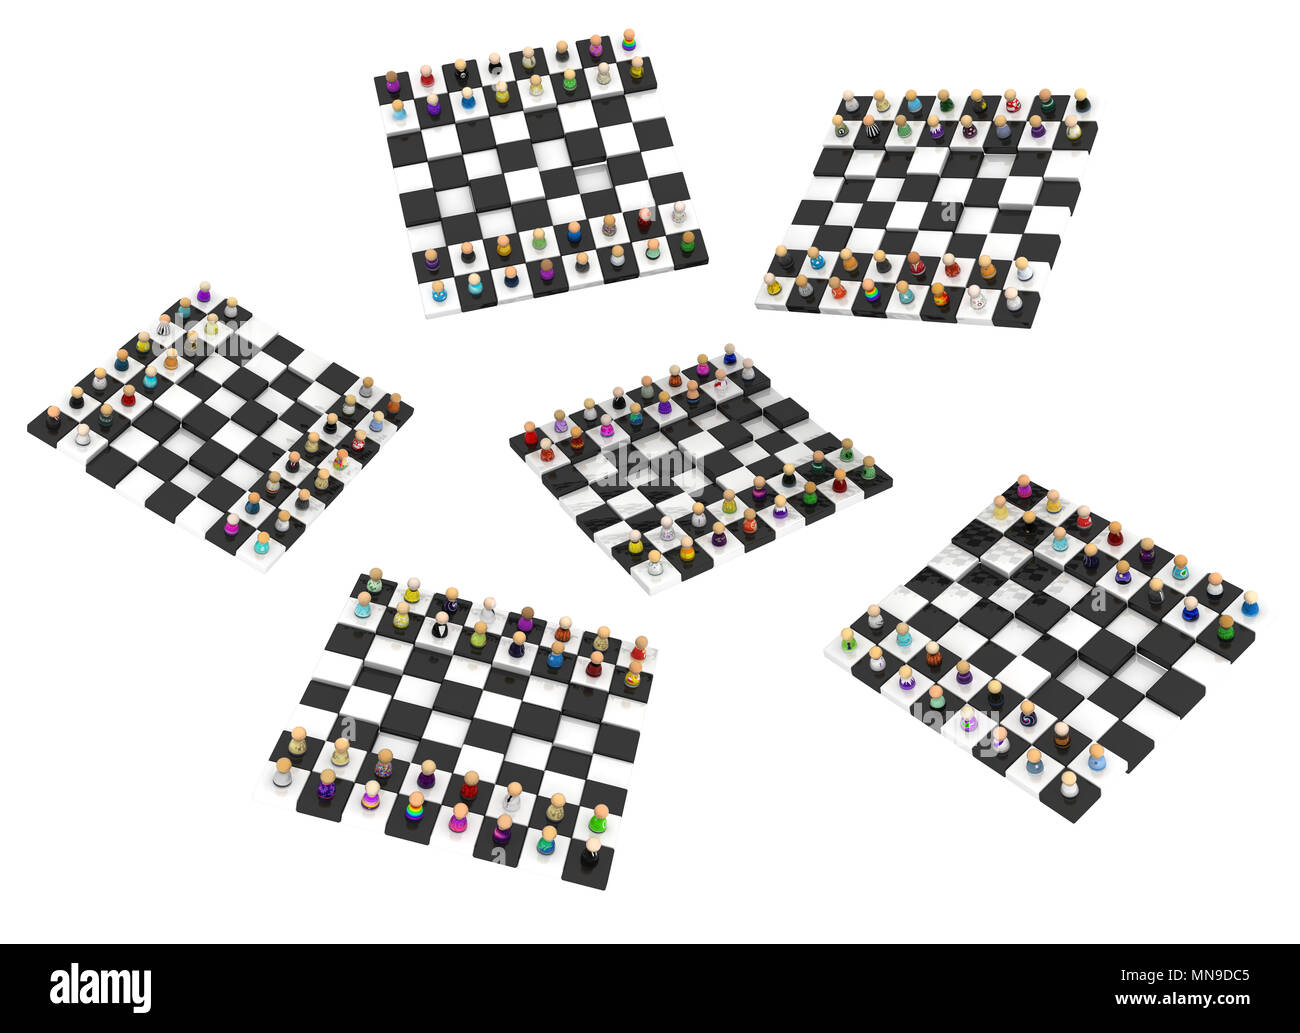 Crowd of small symbolic figures chessboards, 3d illustration, horizontal, isolated, over white - Stock Image